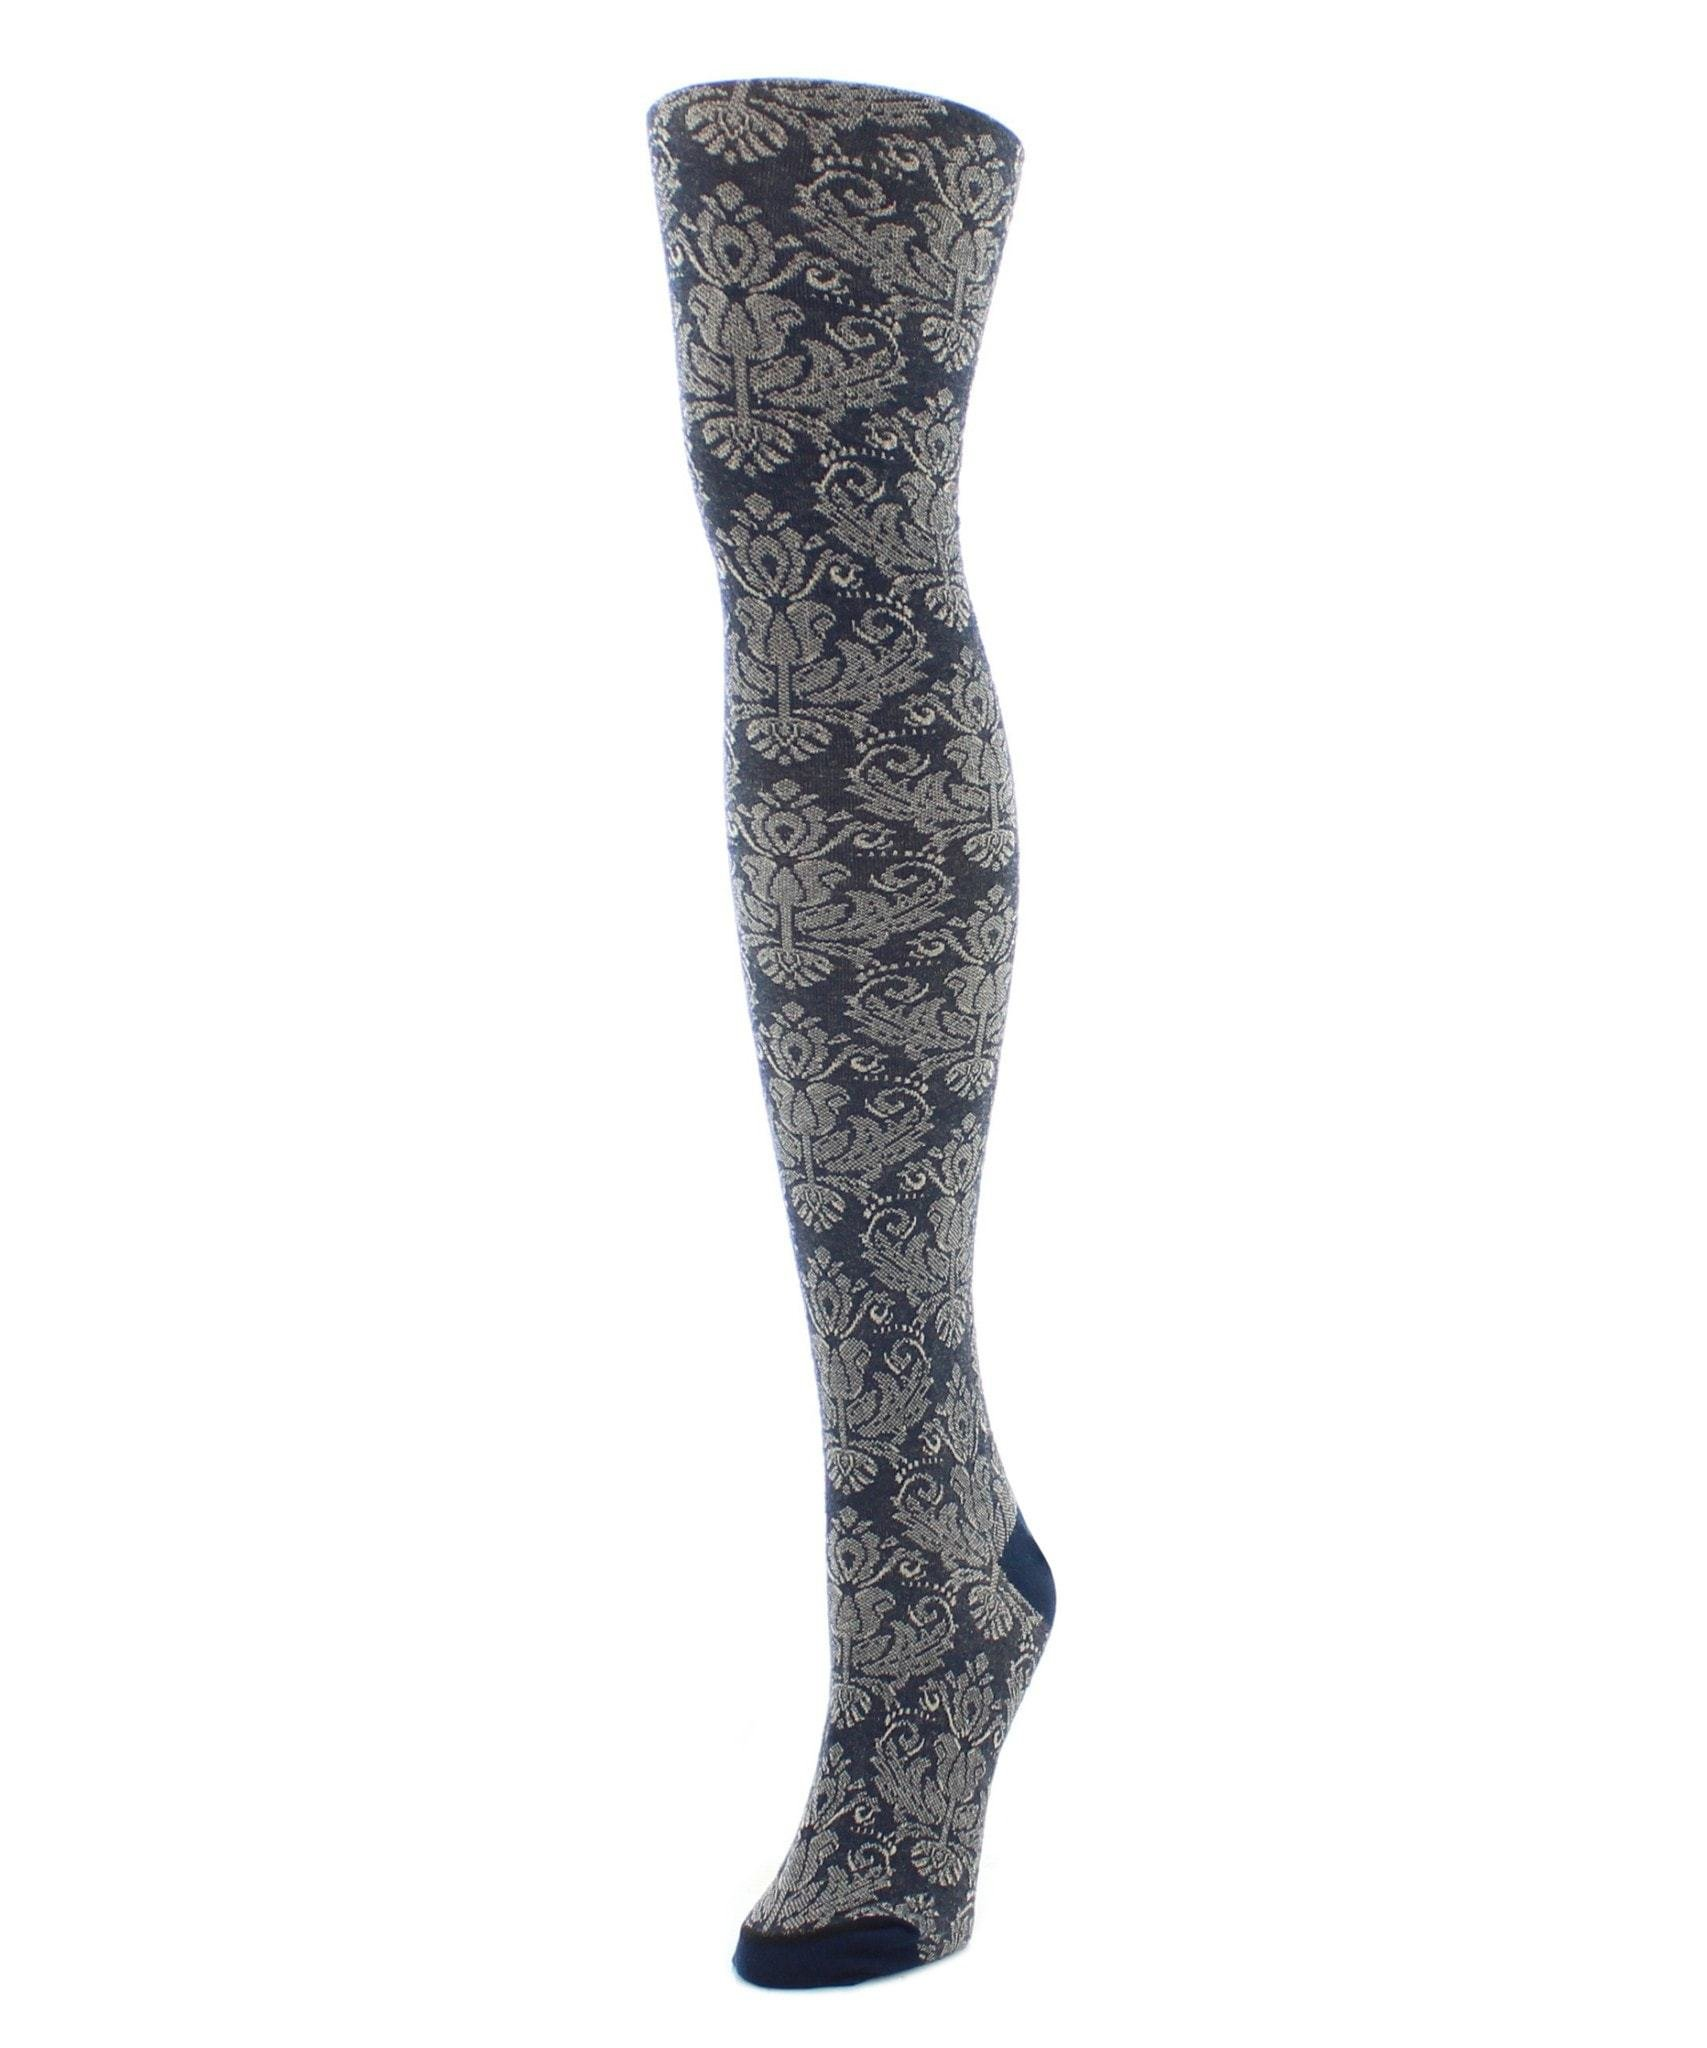 MeMoi Sweater Tights   Patterned Tights   Baroque Patterned Navy Blazer Large/Xtra Large